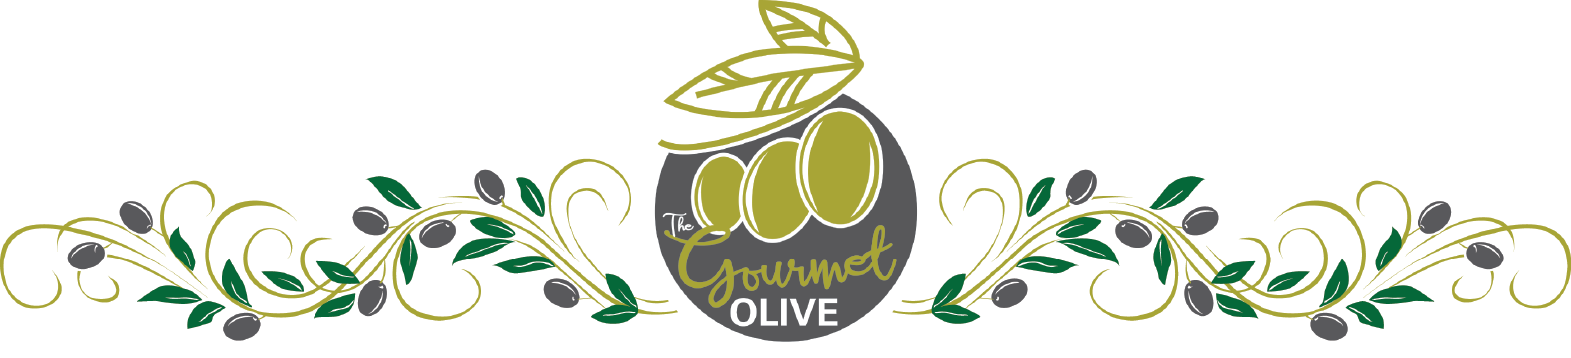 The Gourmet Olive